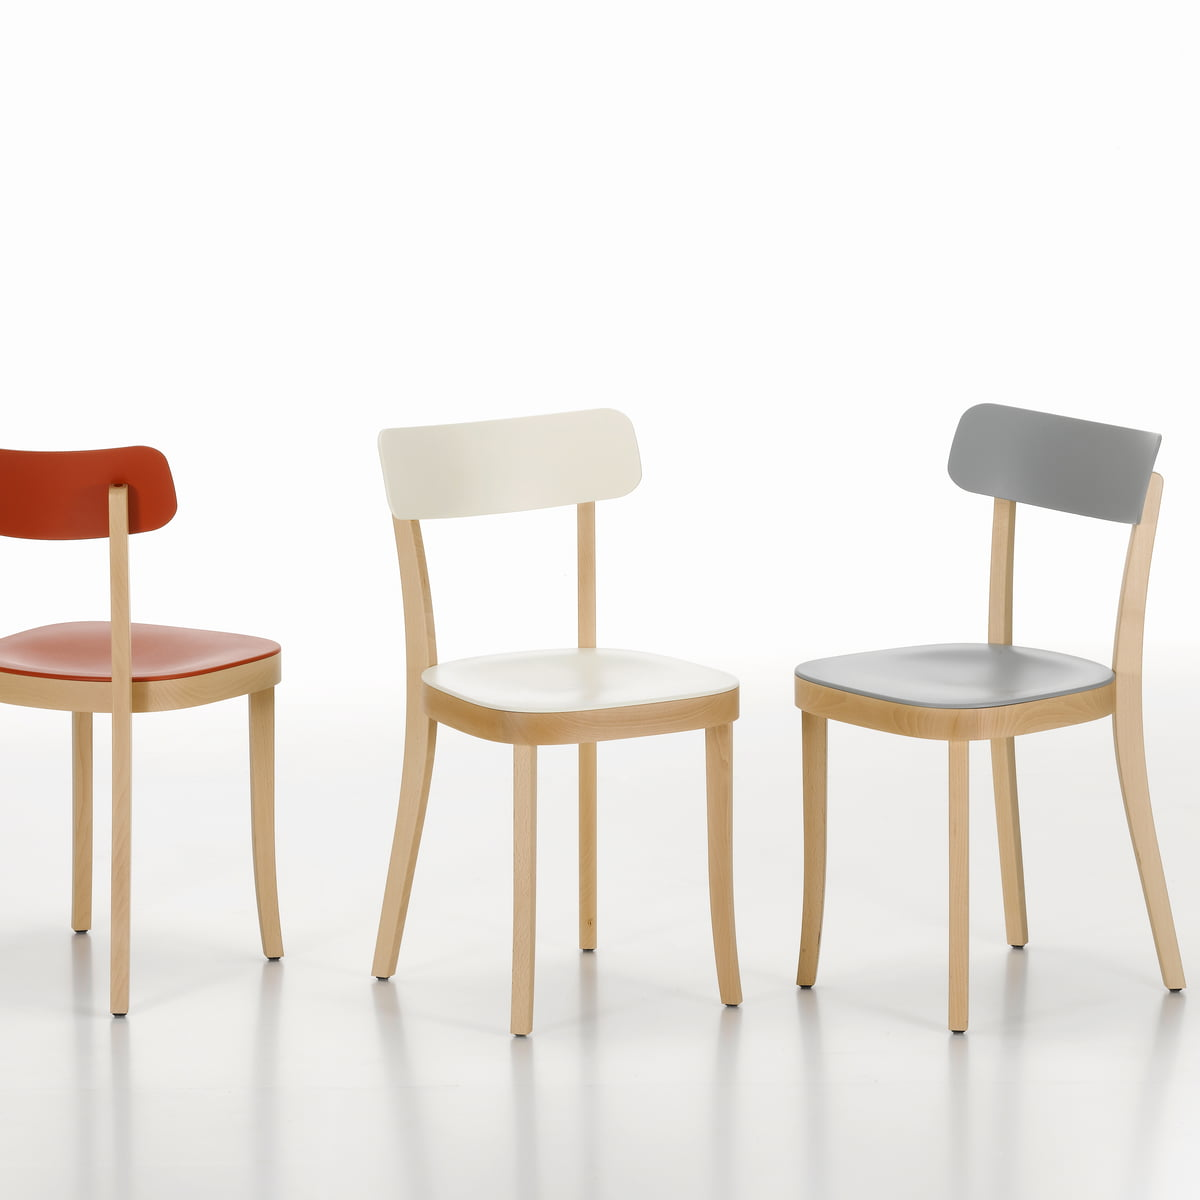 The Basel Chair by Vitra in the design shop